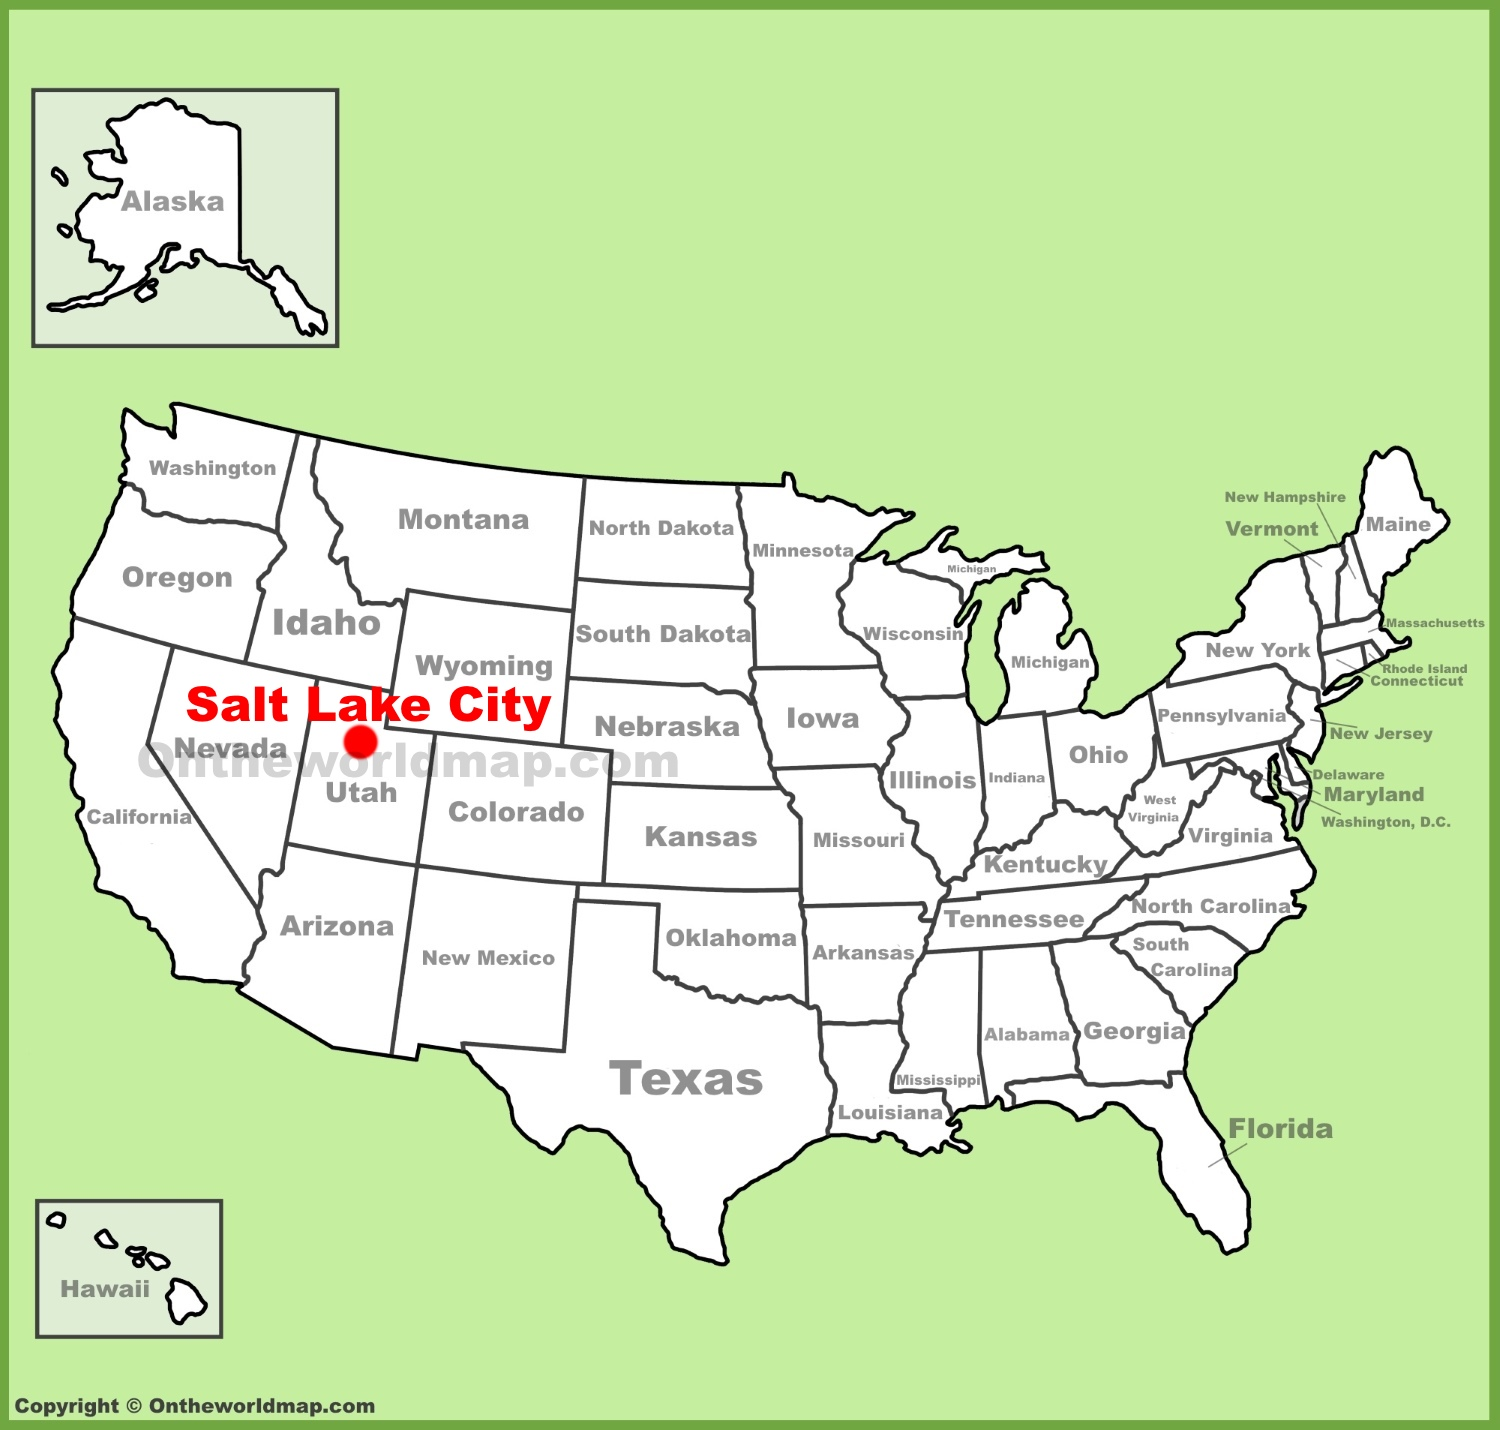 Salt Lake City Maps Utah US Maps Of Salt Lake City - Us city map